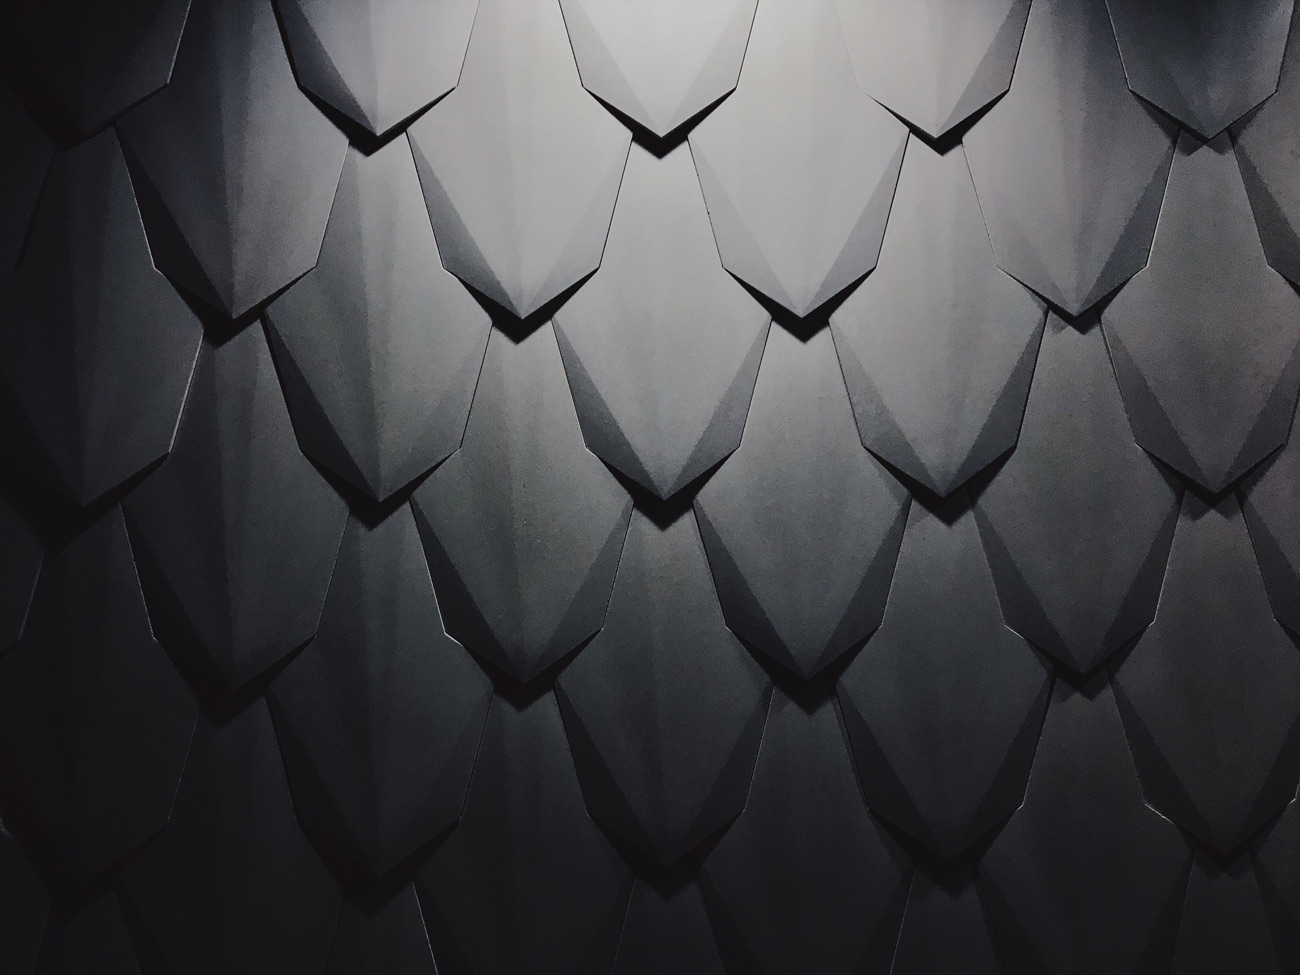 custom dragon scale concrete wall tiles